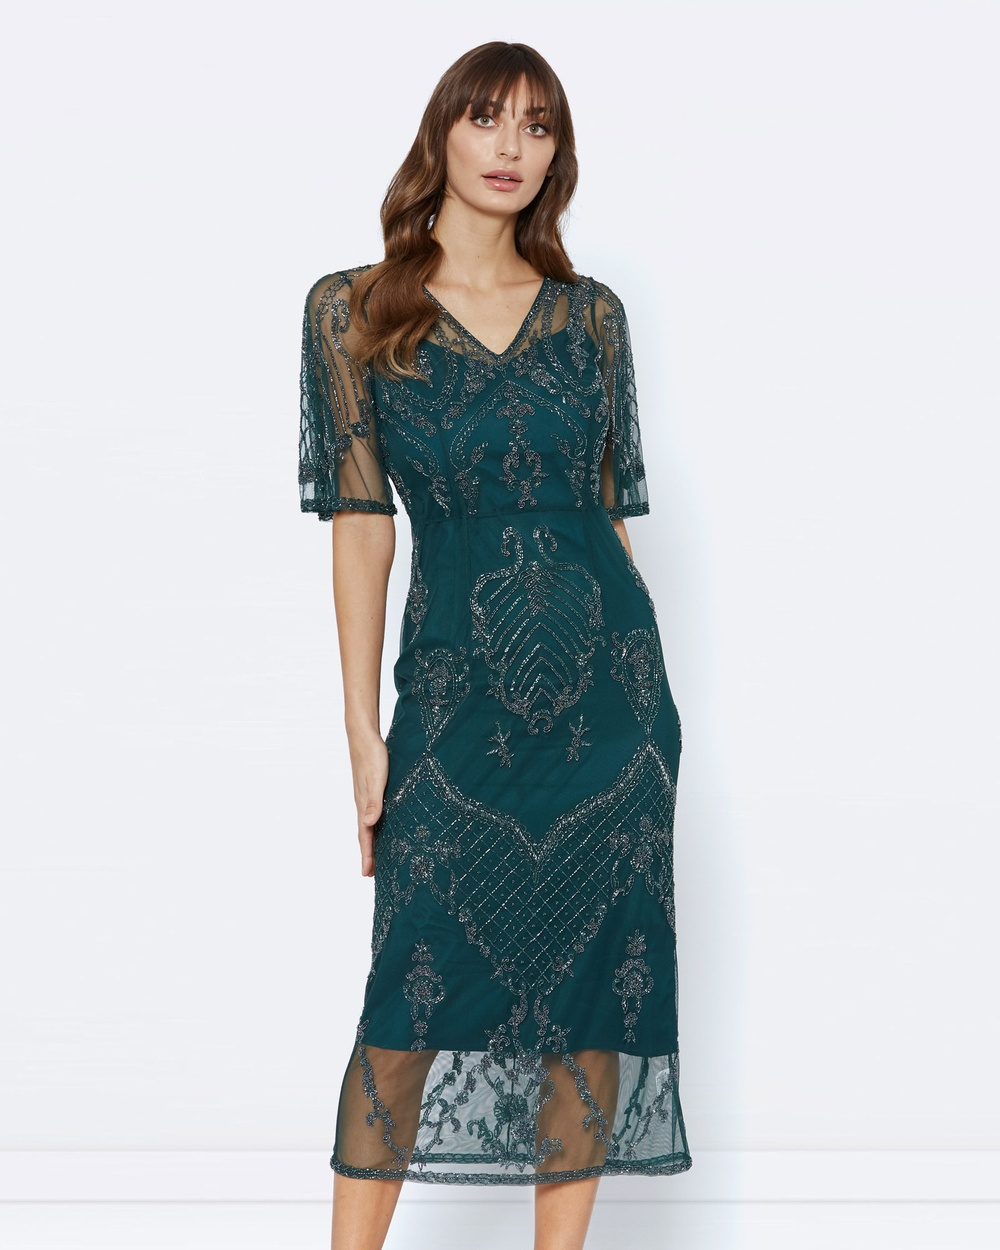 Alannah Hill Pandora Dreaming Dress Dresses Green Pandora Dreaming Dress